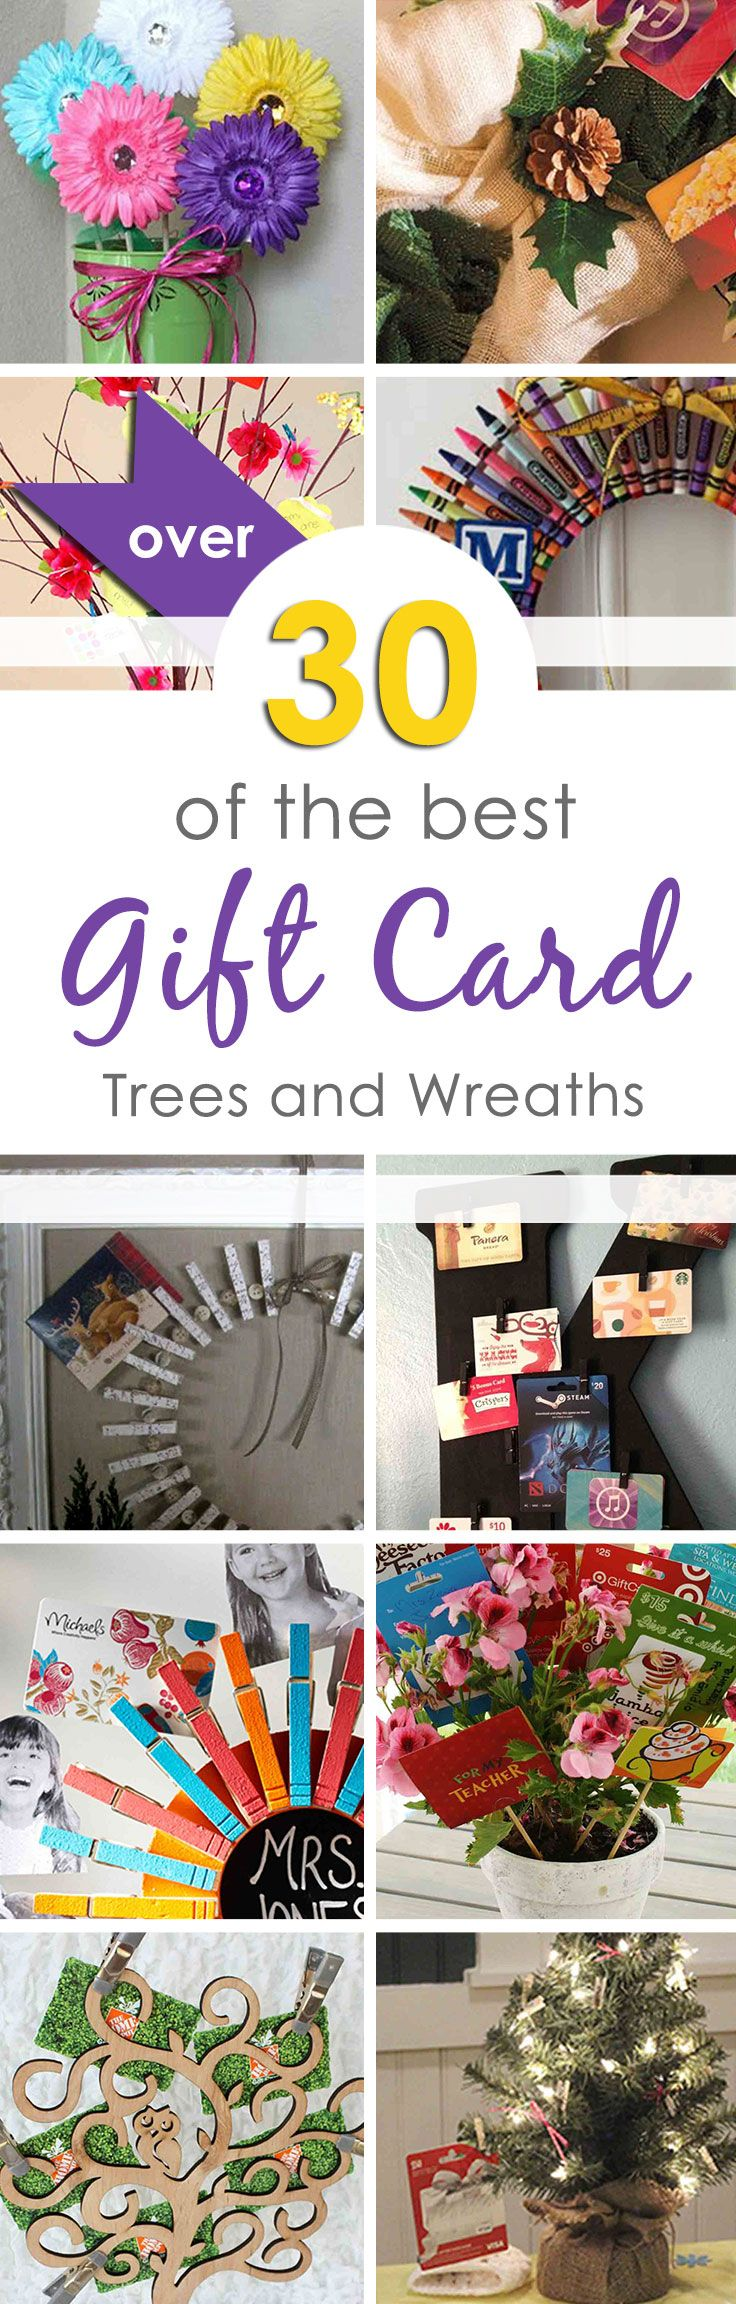 Over 30 of the best gift card trees and gift card wreaths i could over 30 of the best gift card trees and gift card wreaths i could find negle Choice Image